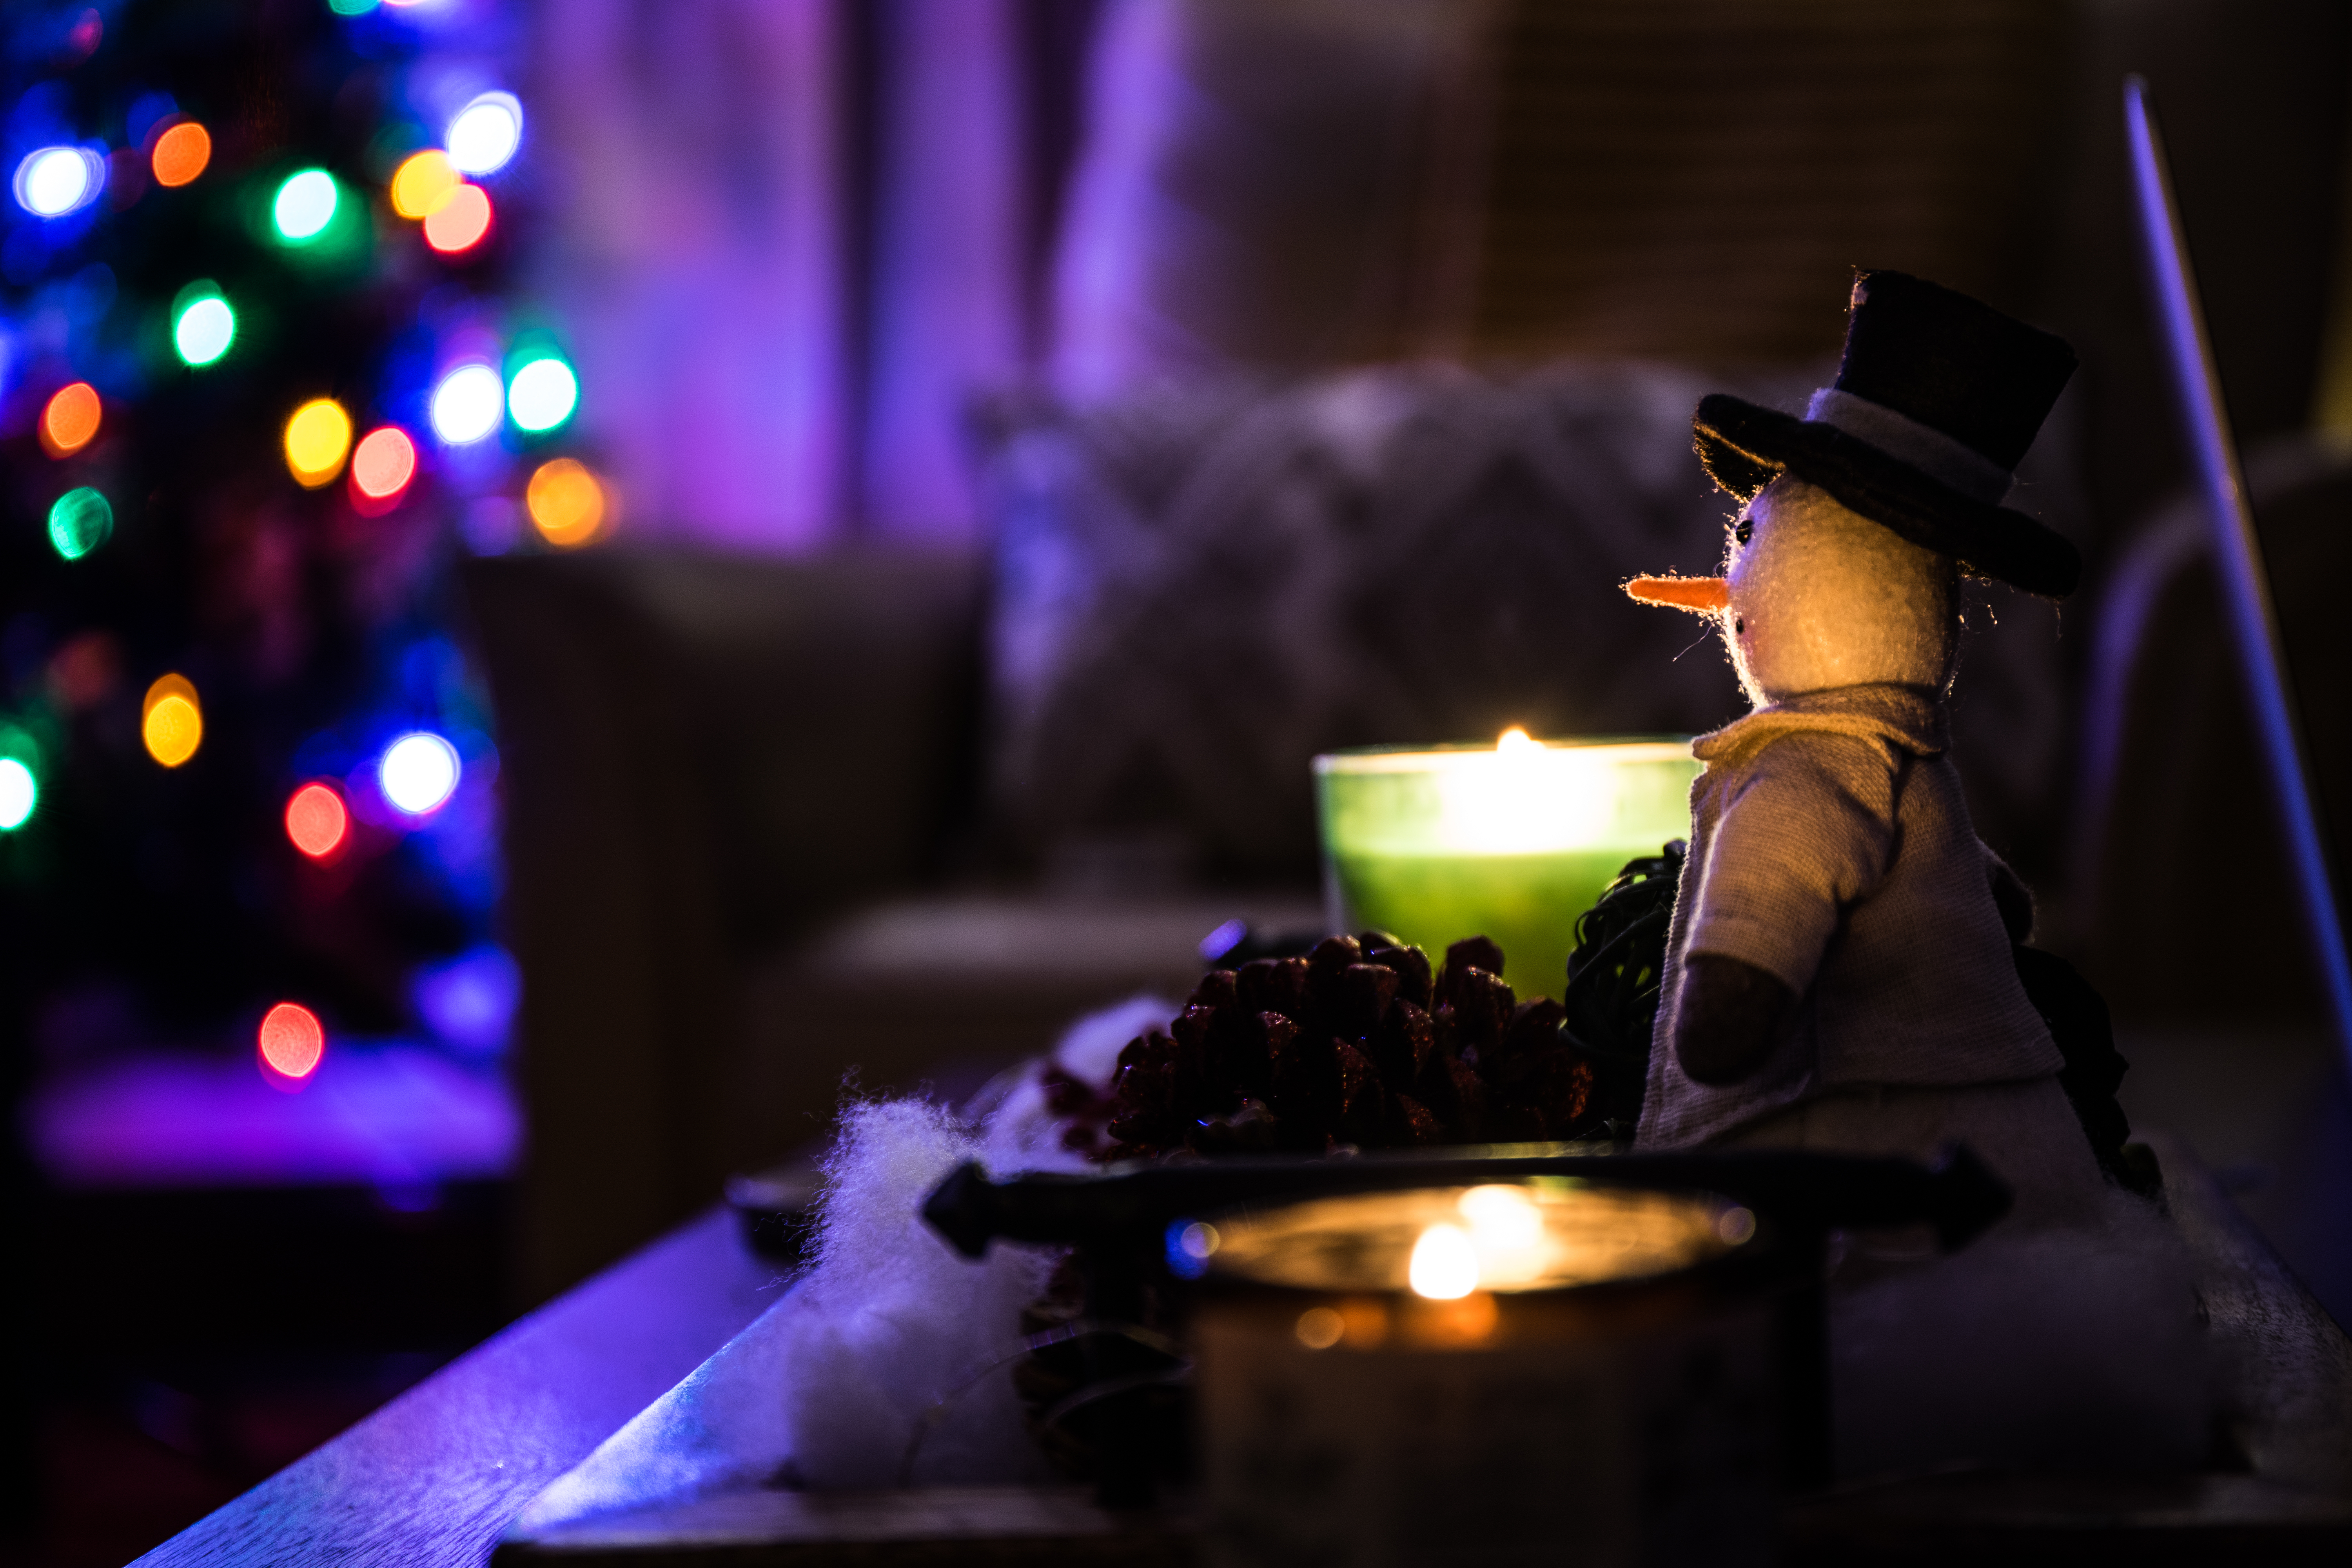 106787 download wallpaper Holidays, Candles, Snowman, Christmas screensavers and pictures for free